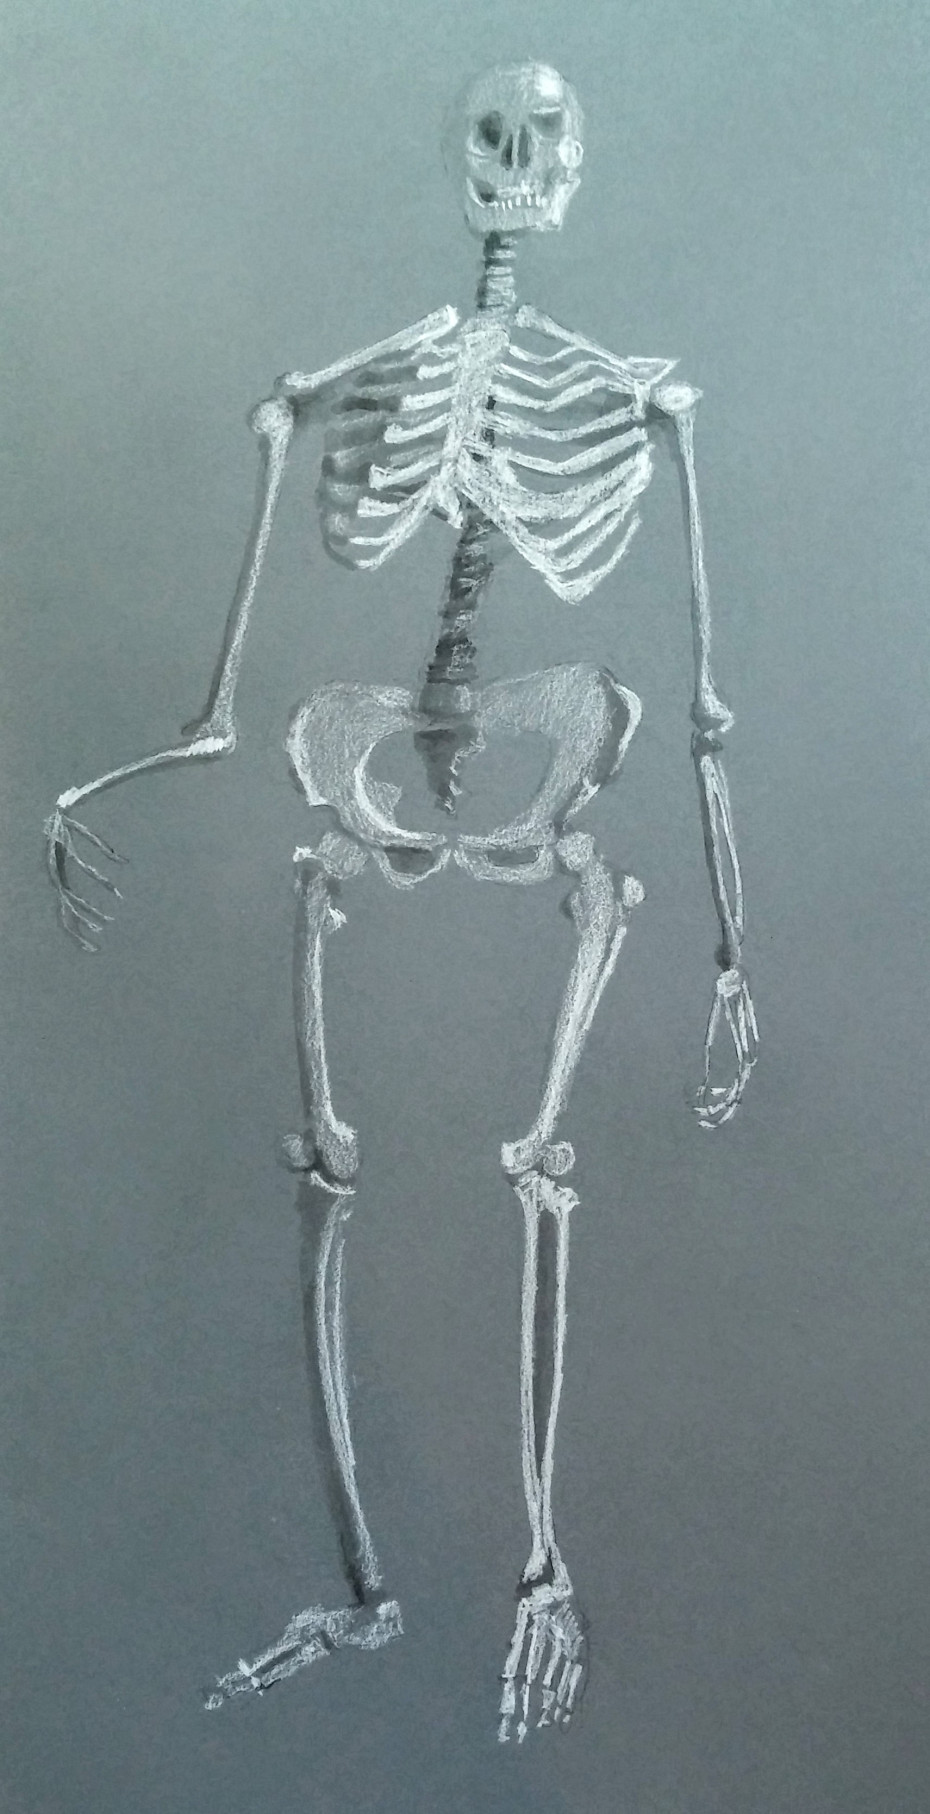 Hippy Skeleton.jpg